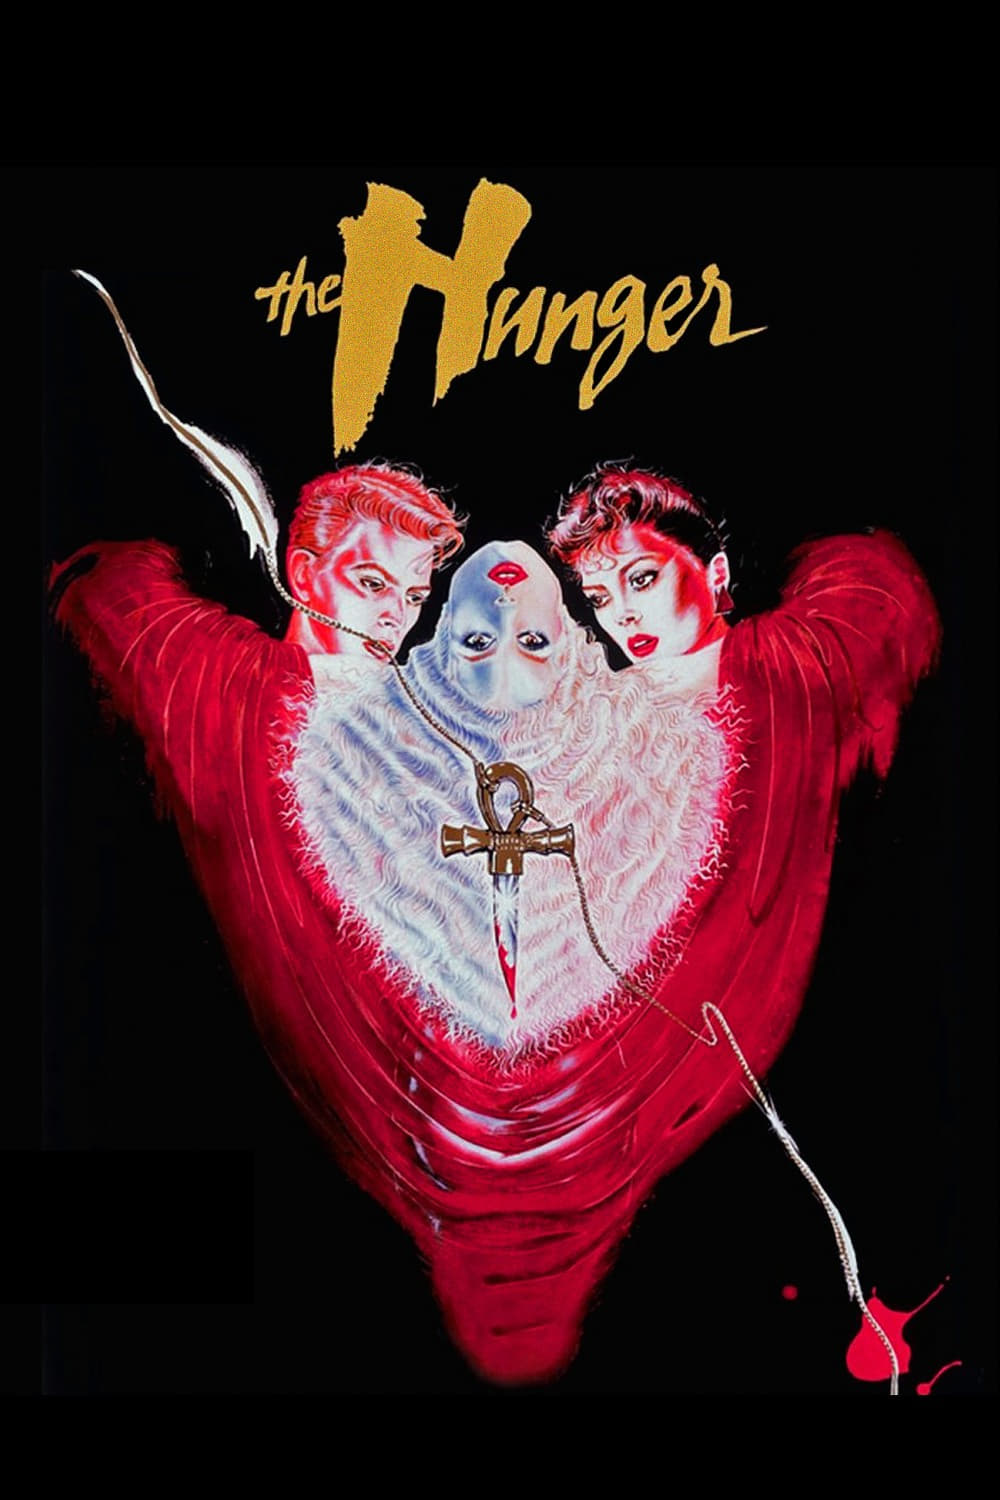 Poster for THE HUNGER